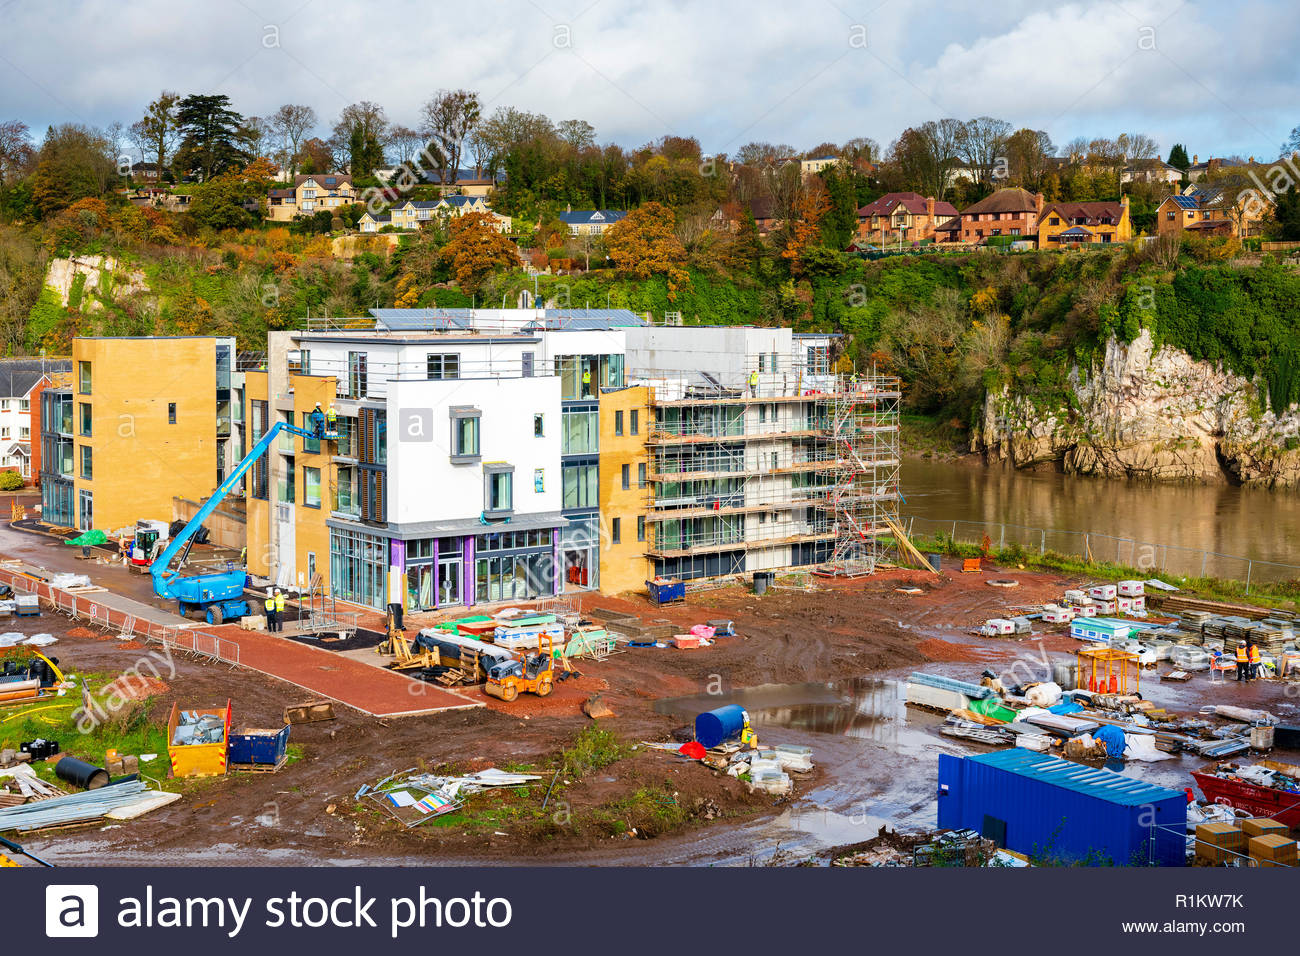 Severn Quay luxury new apartments in Chepstow, Wales, UK. Building site next to the river Wye. - Stock Image